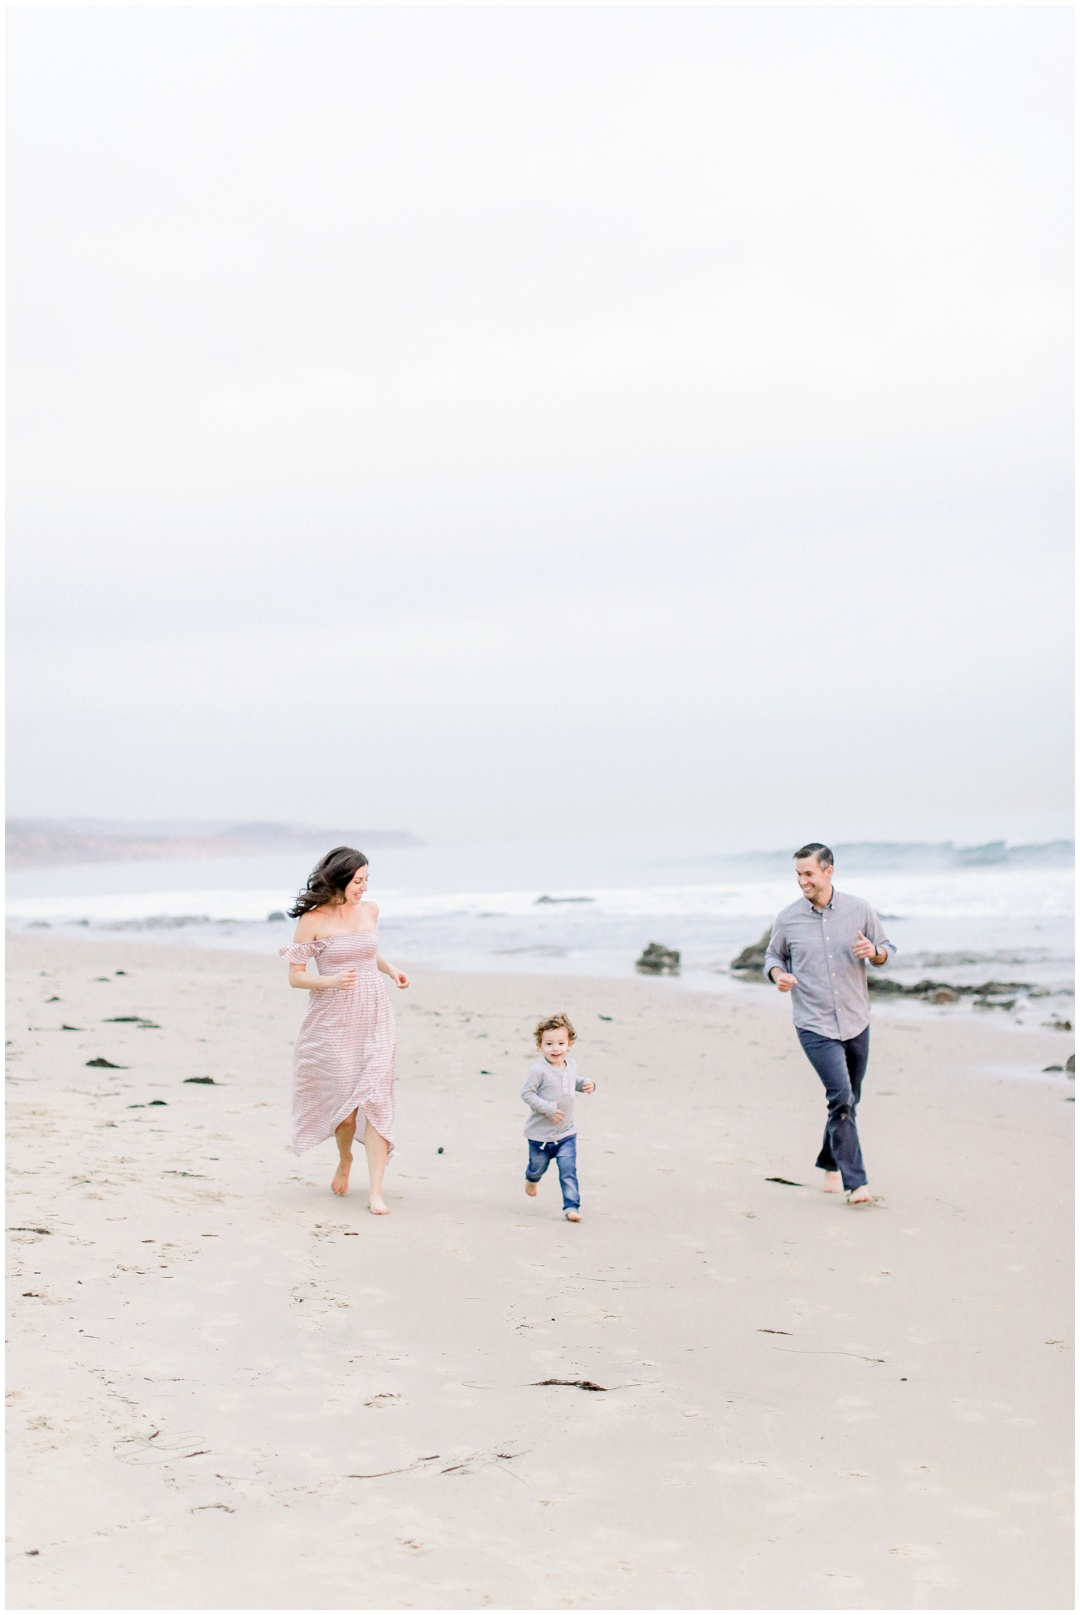 Orange_County_Family_Photographer_Newport_Beach_Family_Photographer_Newport_Beach_Newborn_Photographer_Orange_County_Family_Photographer_Cori_Kleckner_Photography_Huntington_Beach_Photographer_Asher_Family_2613.jpg